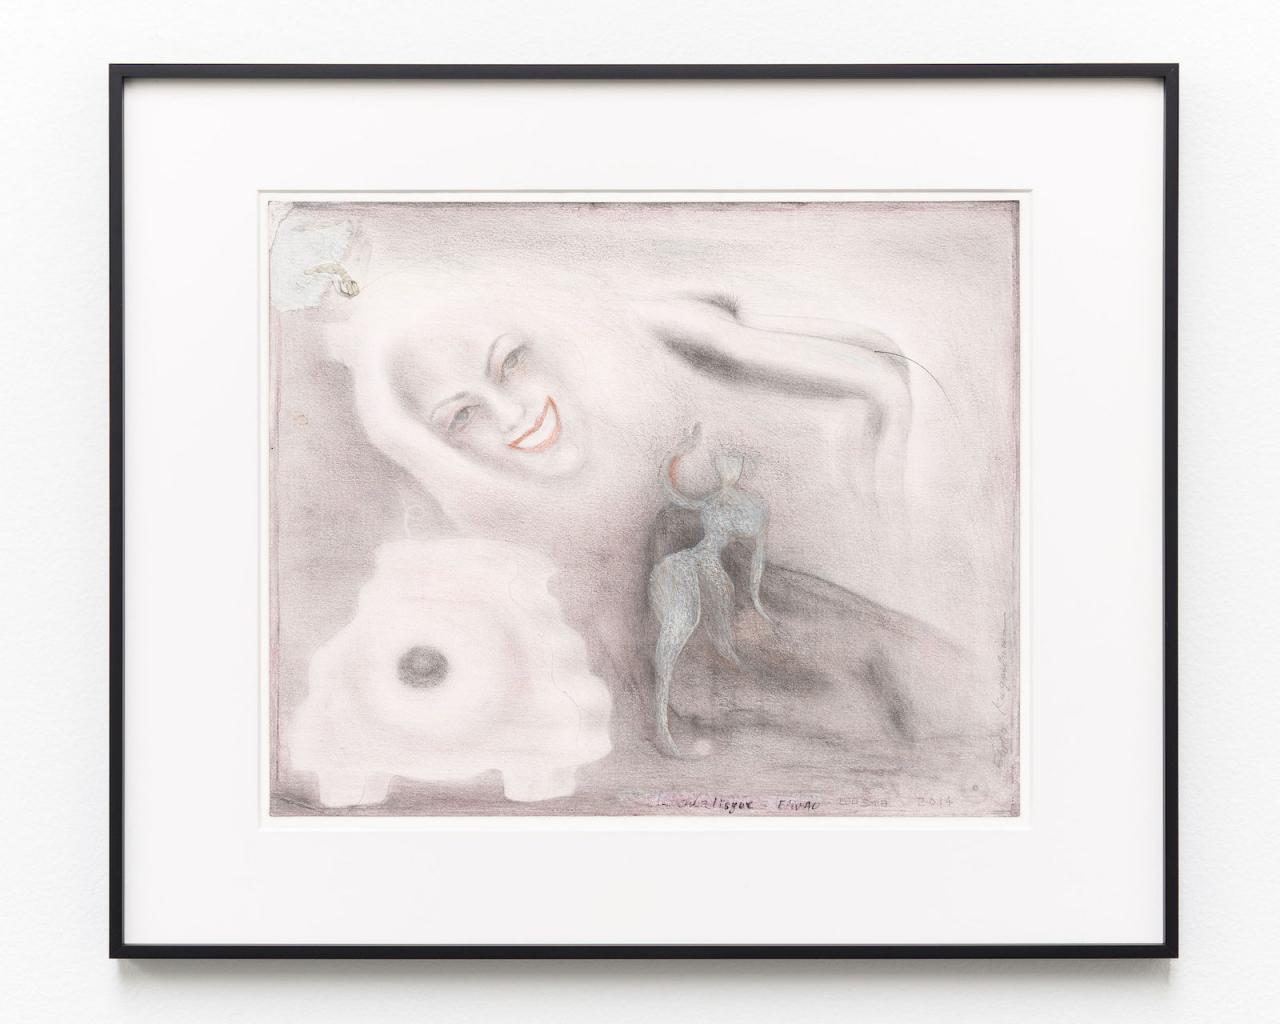 E'wao Kagoshima Odalisque  (2014) Mixed media on paper, framed 35.5 x 43 cm,  Courtesy Gregor Staiger ChertLüdde (Berlin), Misako & Rosen (Tokyo) and Gregor Staiger (Zurich) hosted by Union Pacific